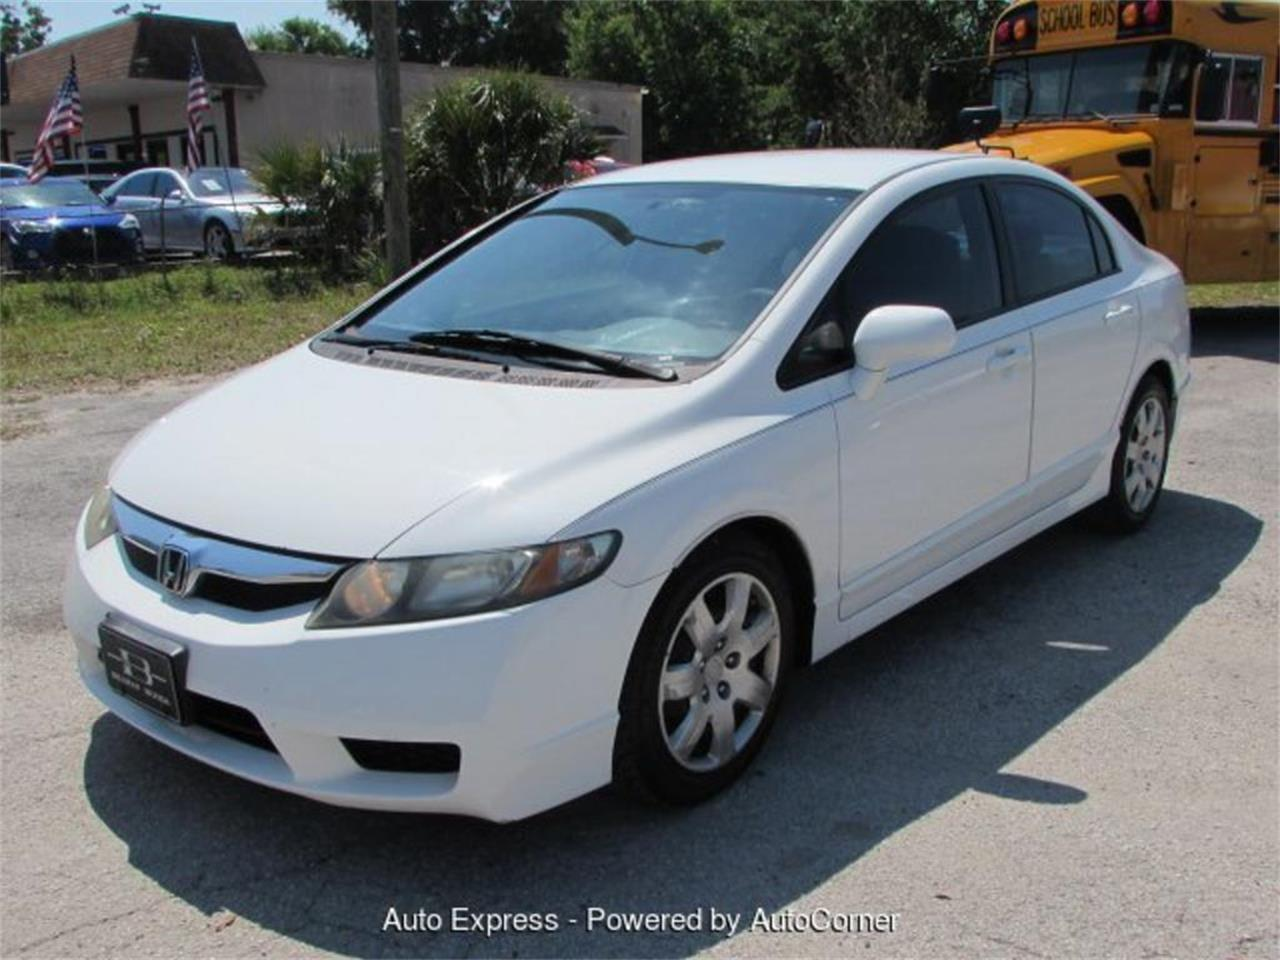 Large Picture of 2010 Civic - $7,999.00 - Q2AK